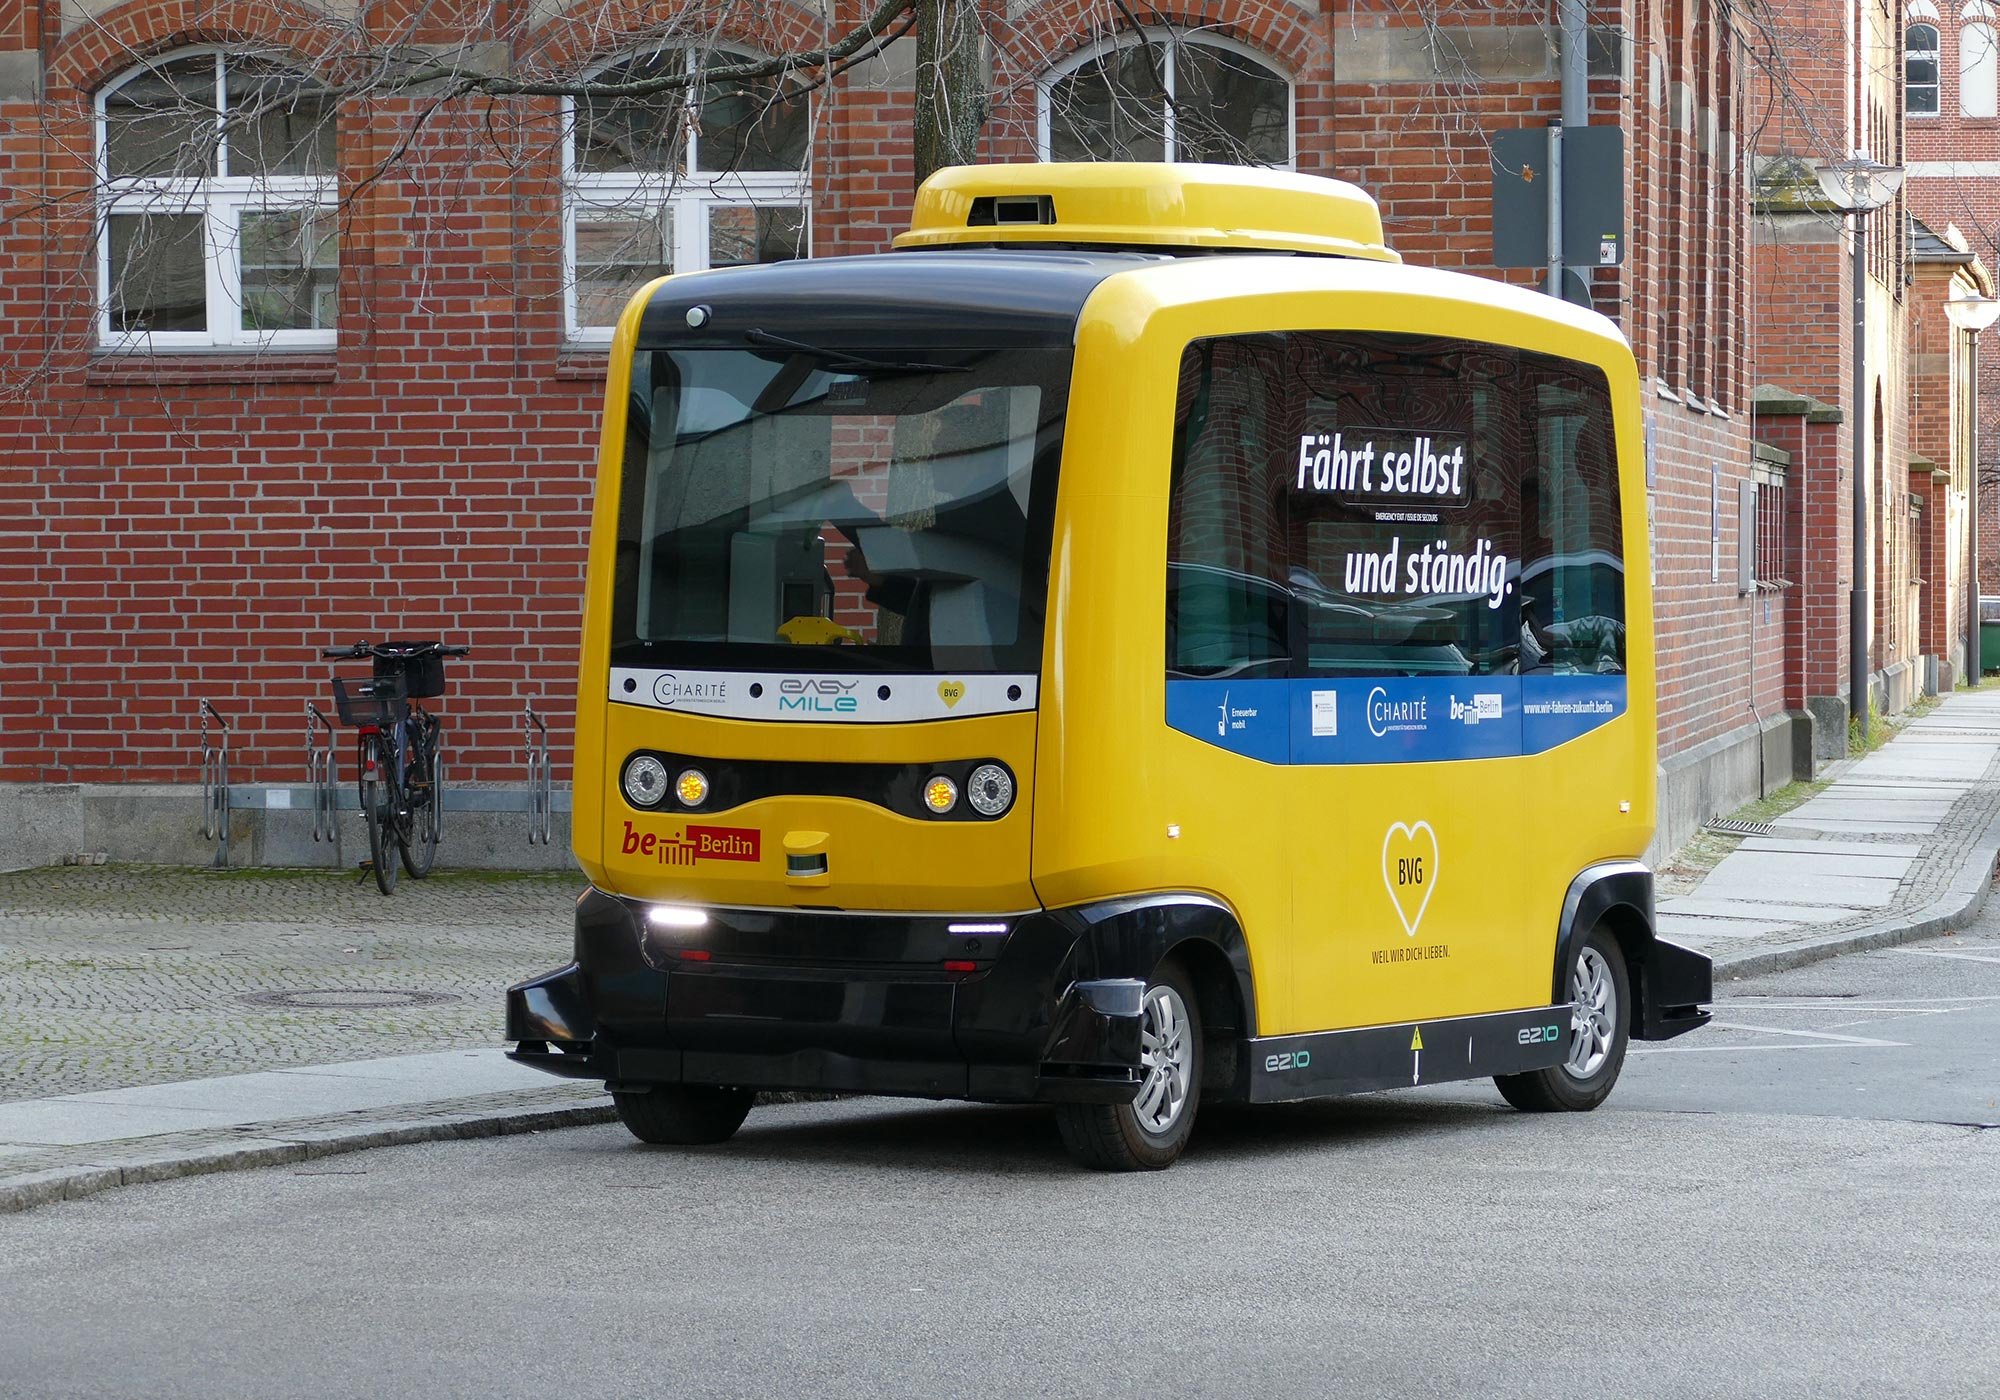 Environmental Trade-Offs of Autonomous Vehicles: Convenience Will Likely Come at a Cost